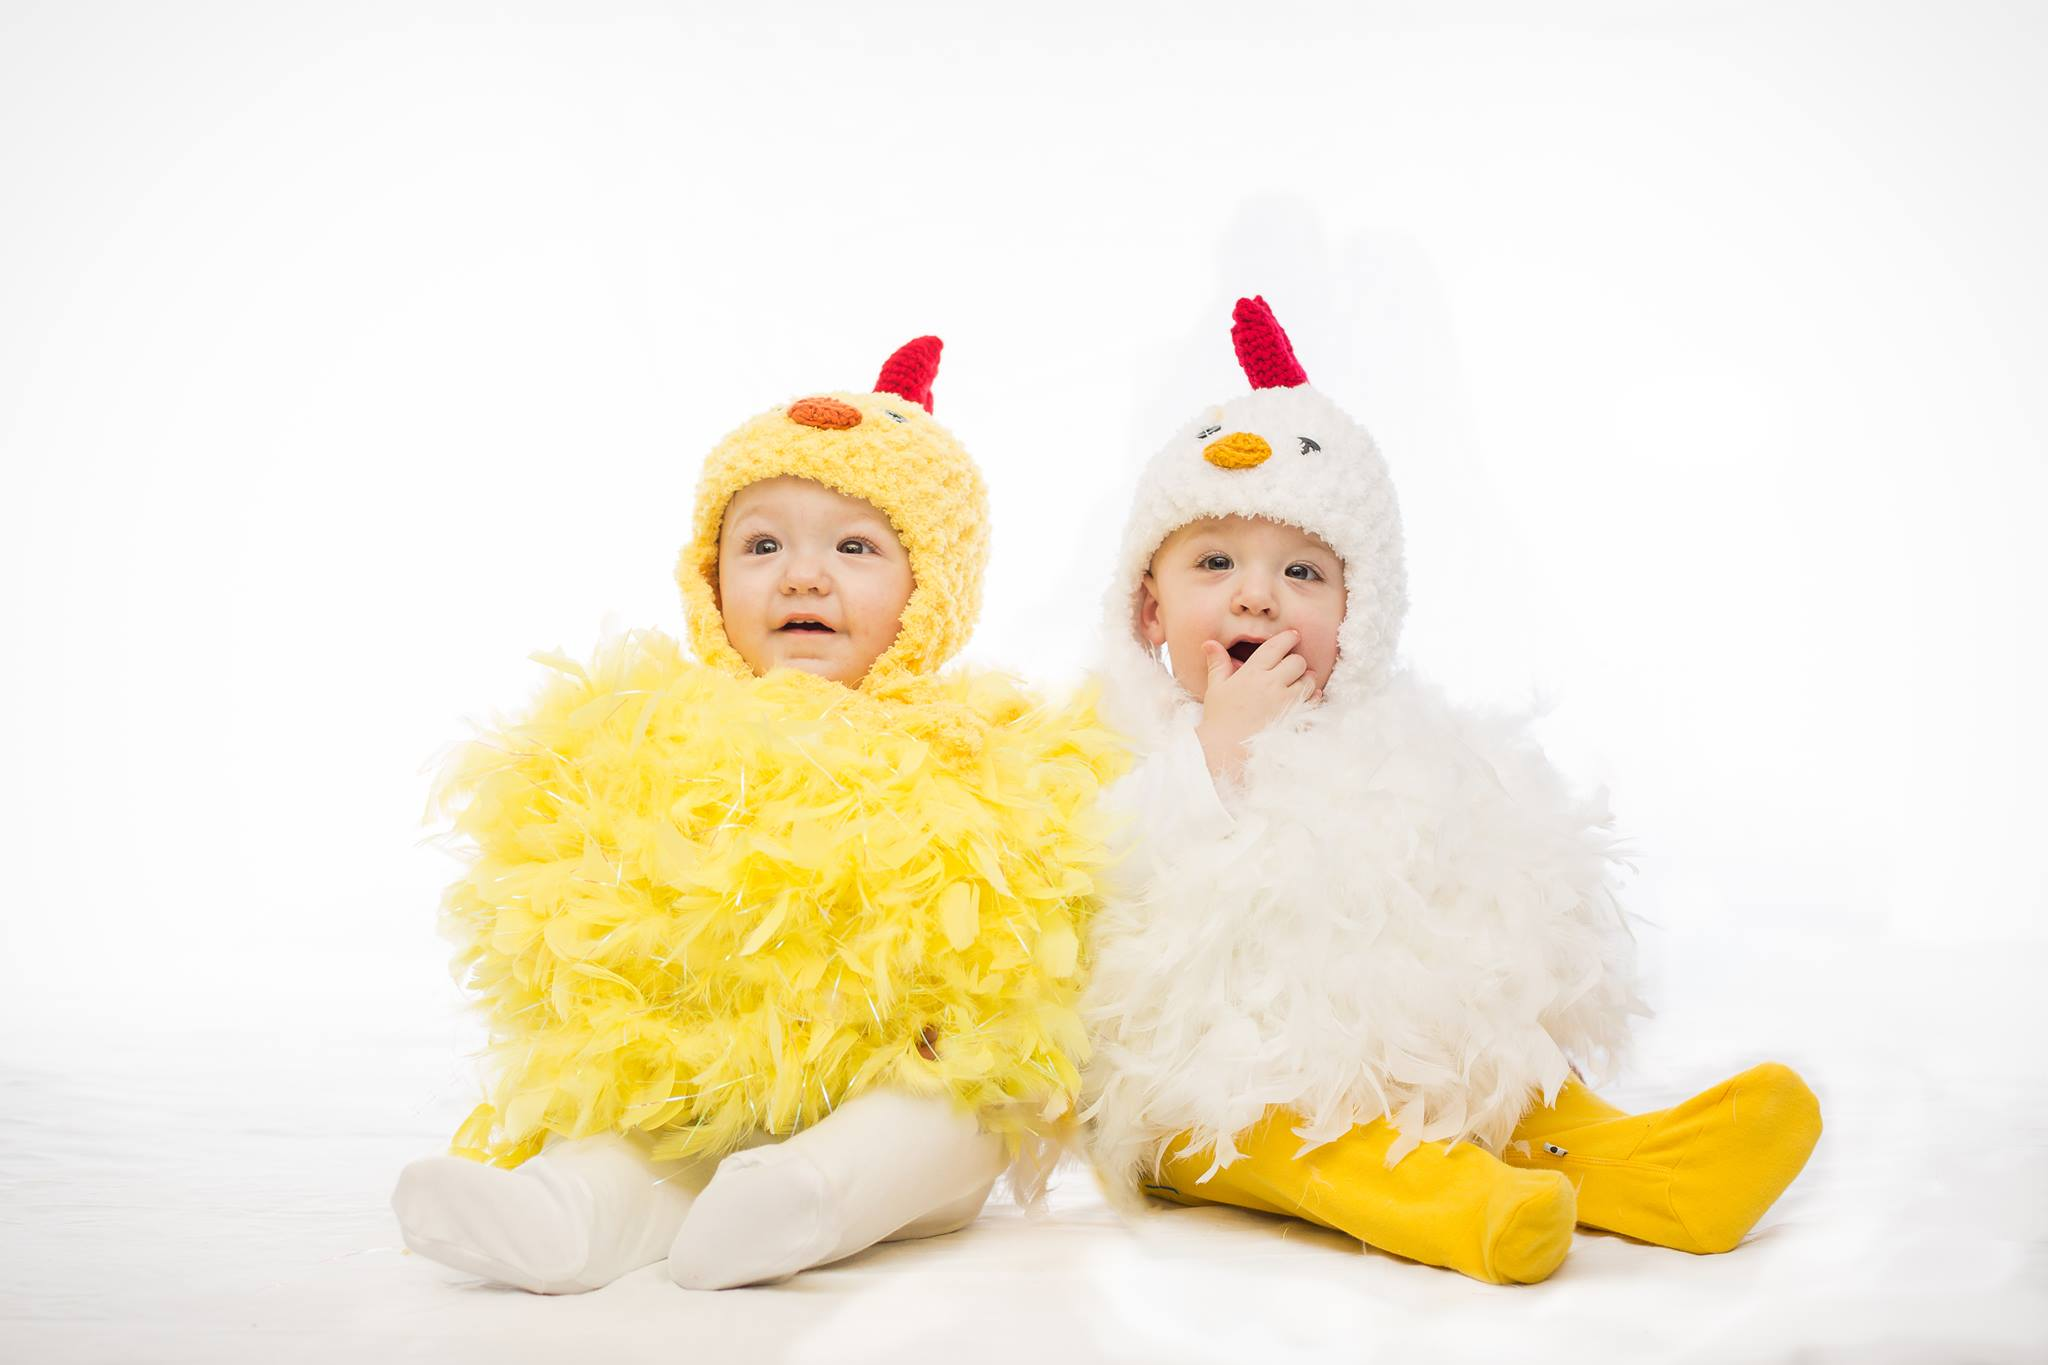 My little chickens! The boys first Halloween costumes & our inspiration for our logo!